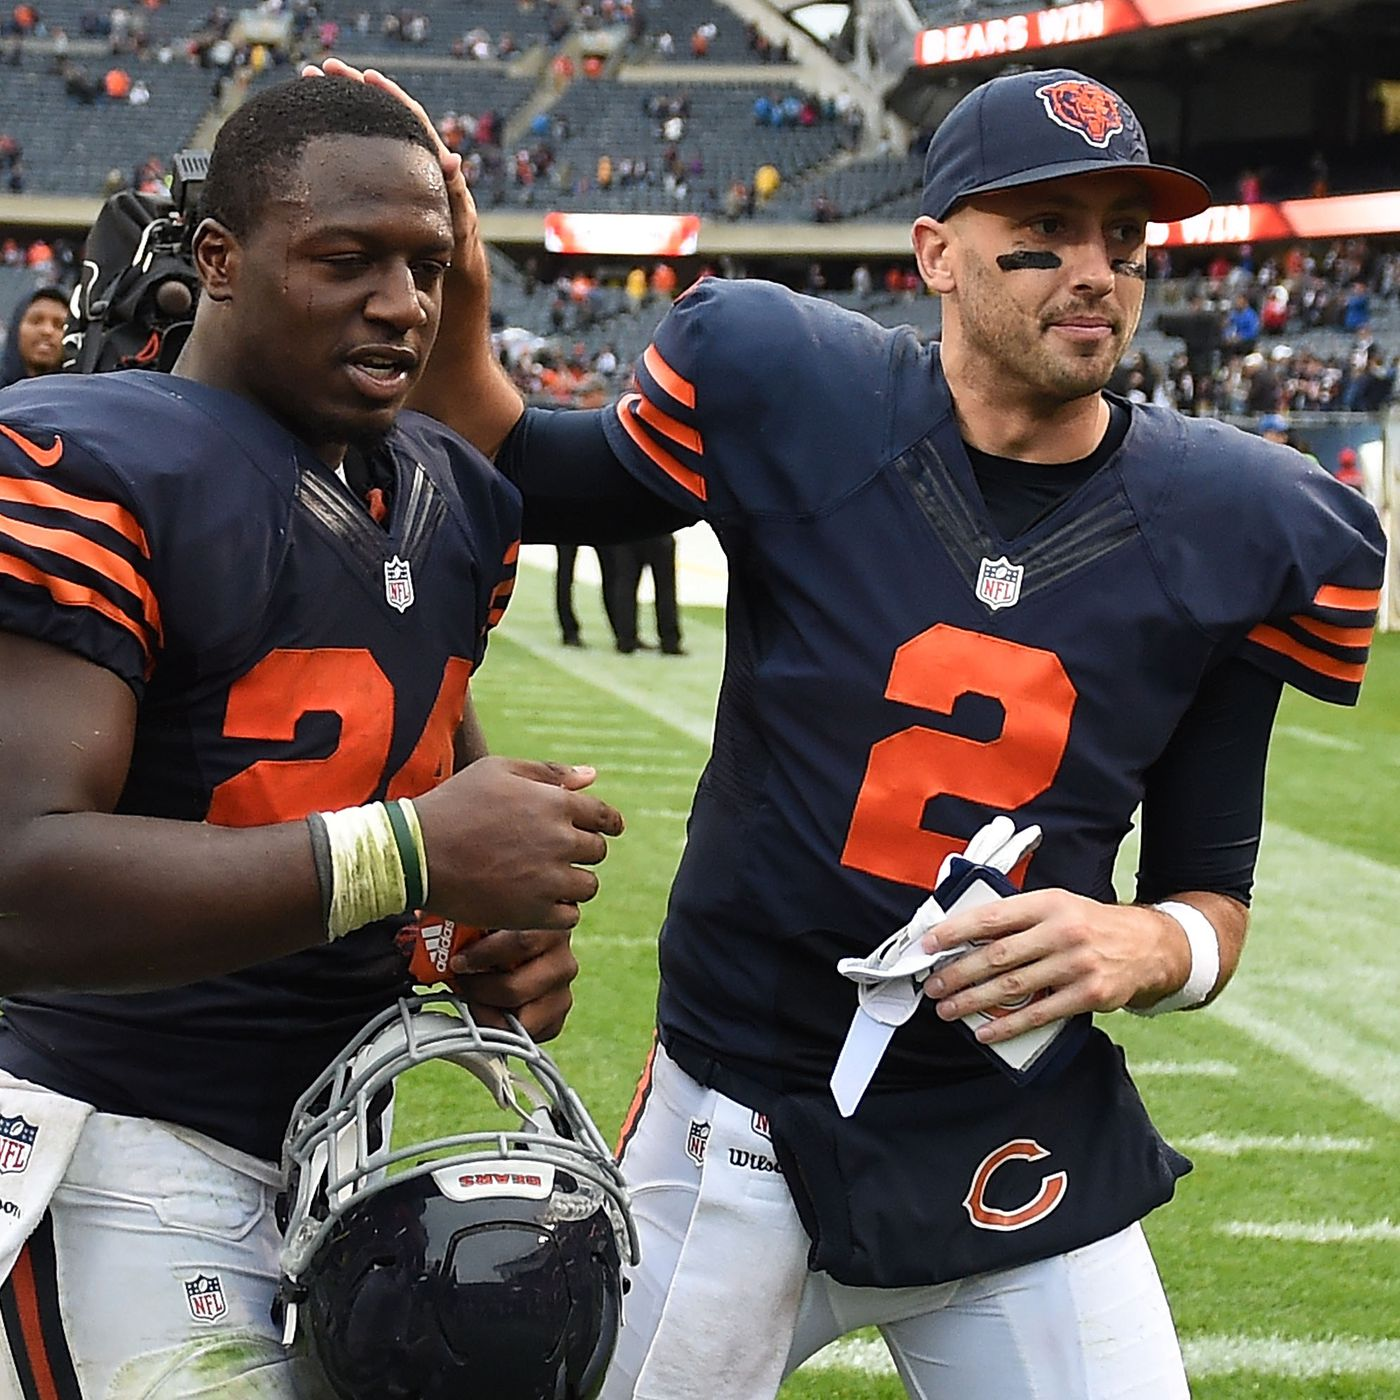 Brian Hoyer Will Be The 1st Quarterback To Join 49ers Under Kyle Shanahan Sbnation Com